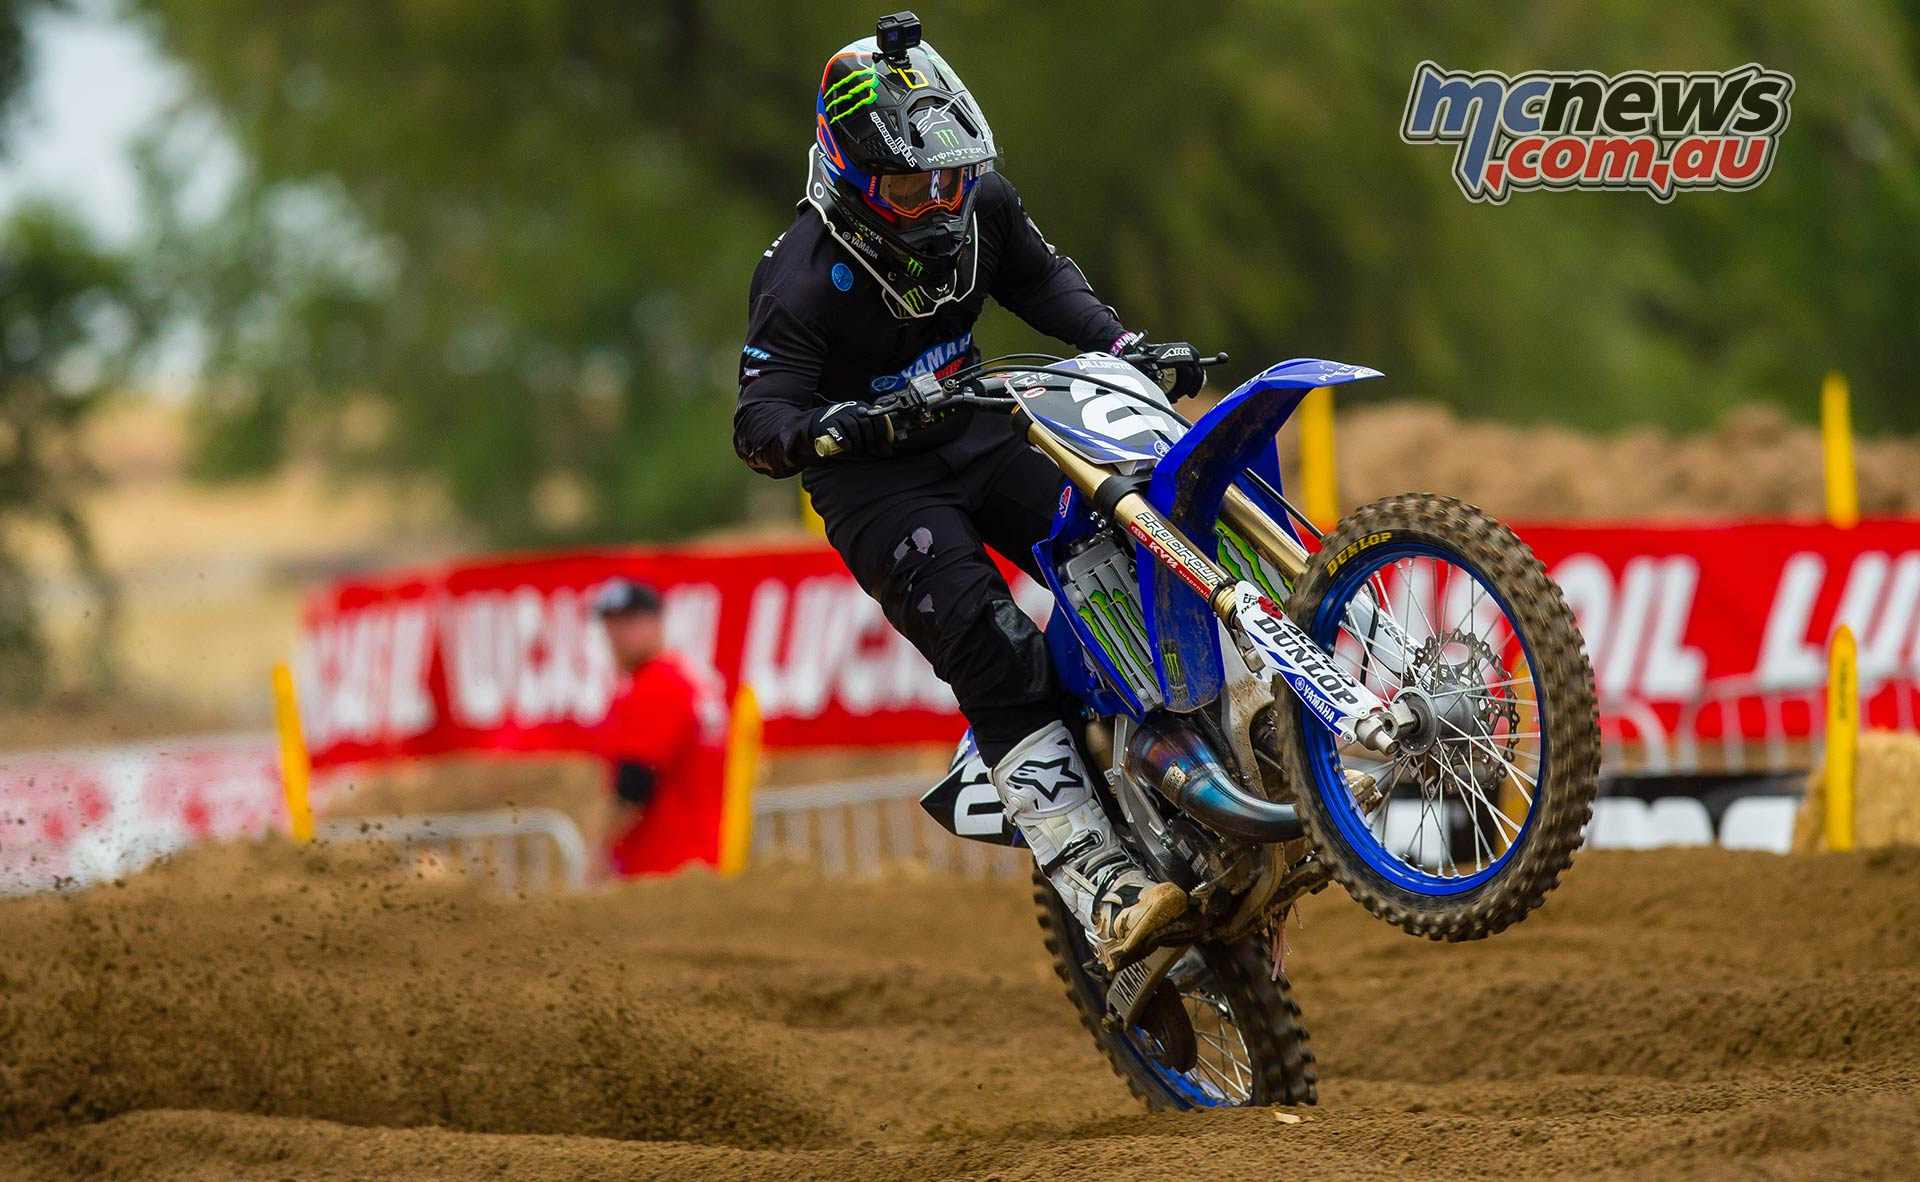 AMA MX Rnd AS Villopoto JK MX Hangtown